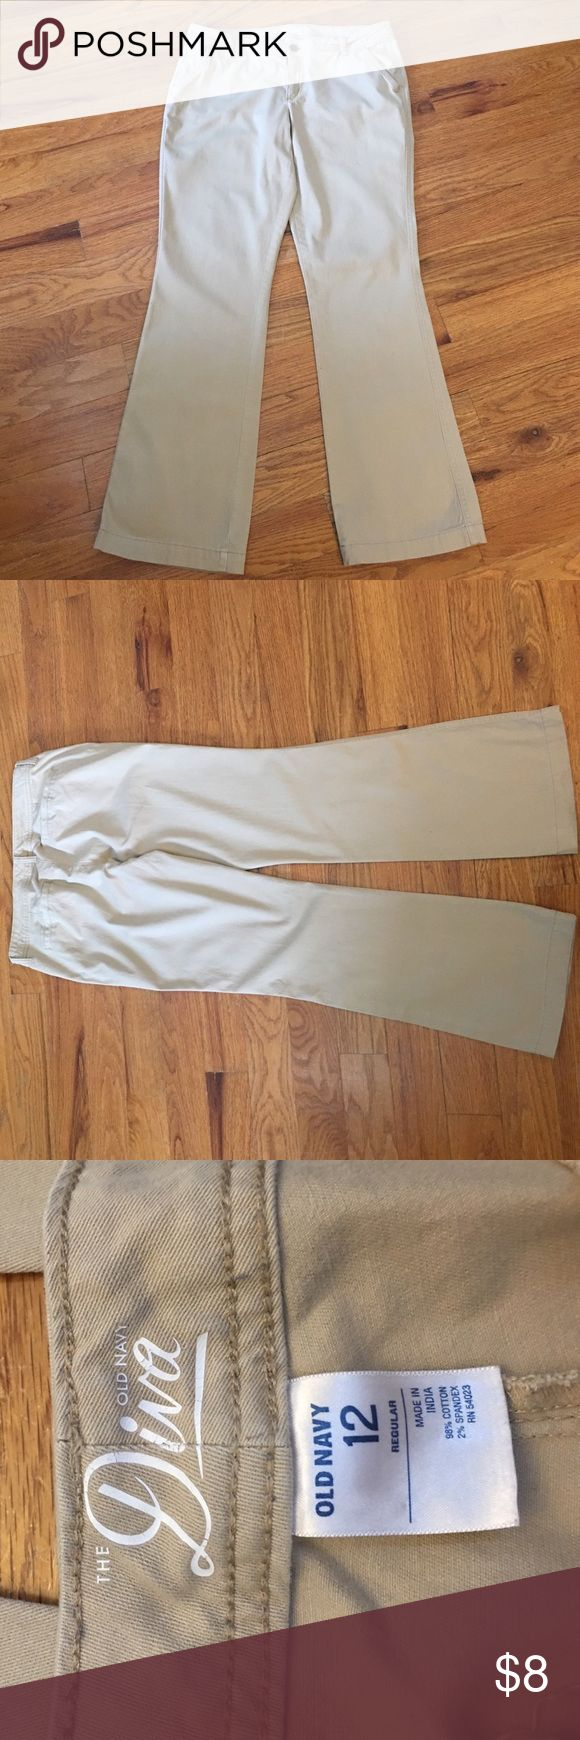 Women's Old Navy Diva Style Khakis size 12 Women's Old Navy Diva Style Khakis size 12, worn a few times. Smoke free home, to tears or holes. No visible stains, the bottoms have a little wear to them but these pants are overall in Good condition. They measure 31 inches from the crotch to the bottoms. Bundle this with 2 other items and receive 20% off :) Happy Purchasing! Old Navy Pants Boot Cut & Flare